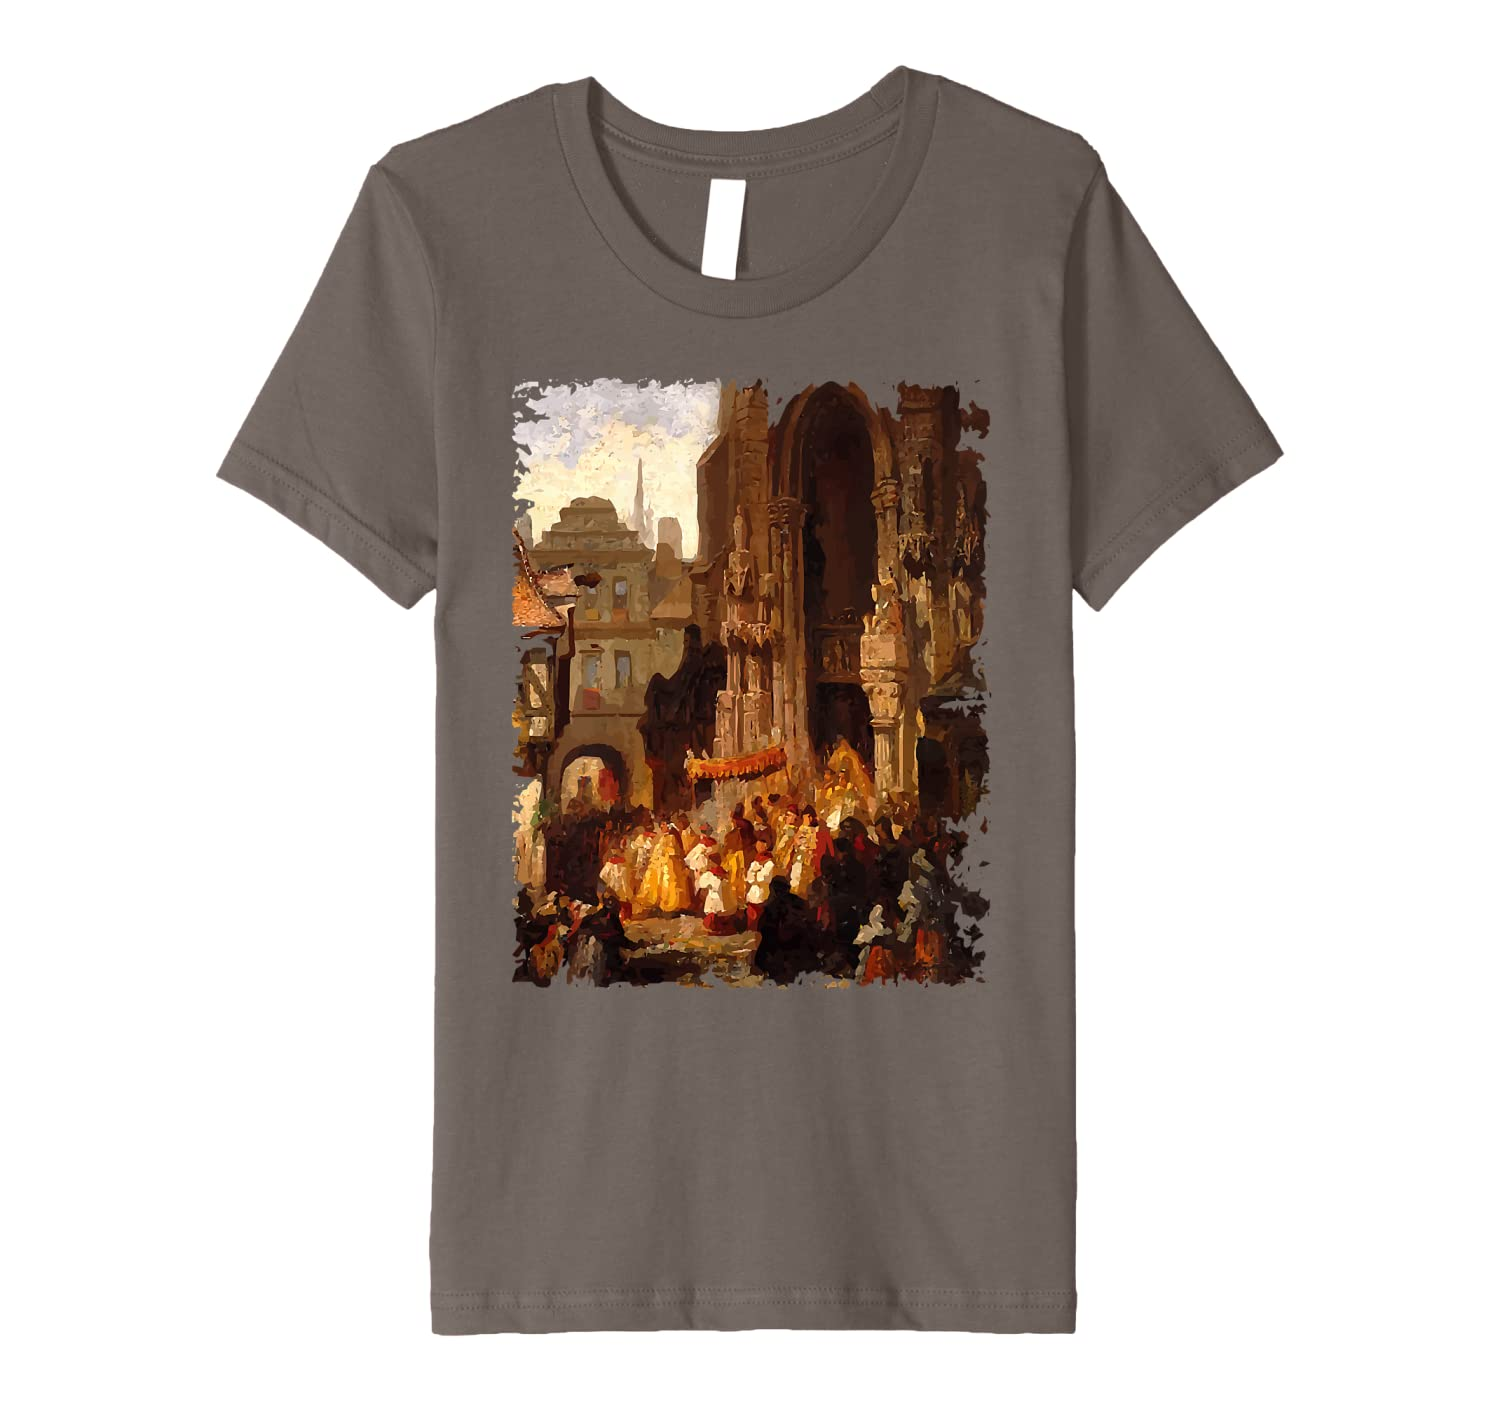 Corpus Christi Procession Catholic Feasts Gifts for Priests Premium T-Shirt